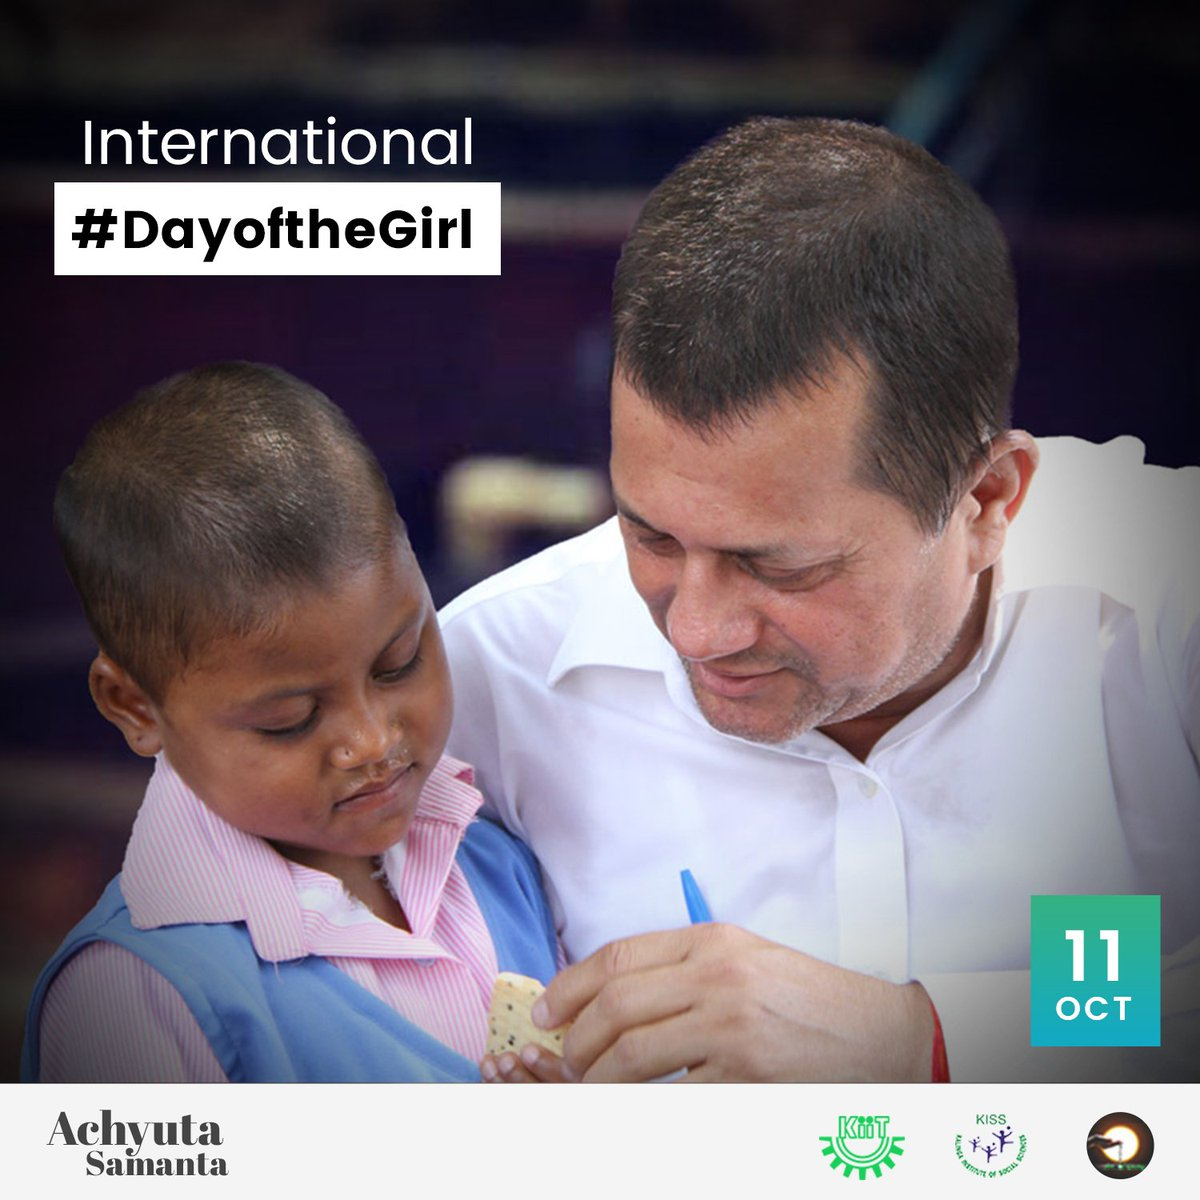 October 11th - it is the #DayoftheGirl There are 1.1 billion girls in the world, and every one of them deserves equal opportunities for a better future. They can drive change and help build a better future for all.